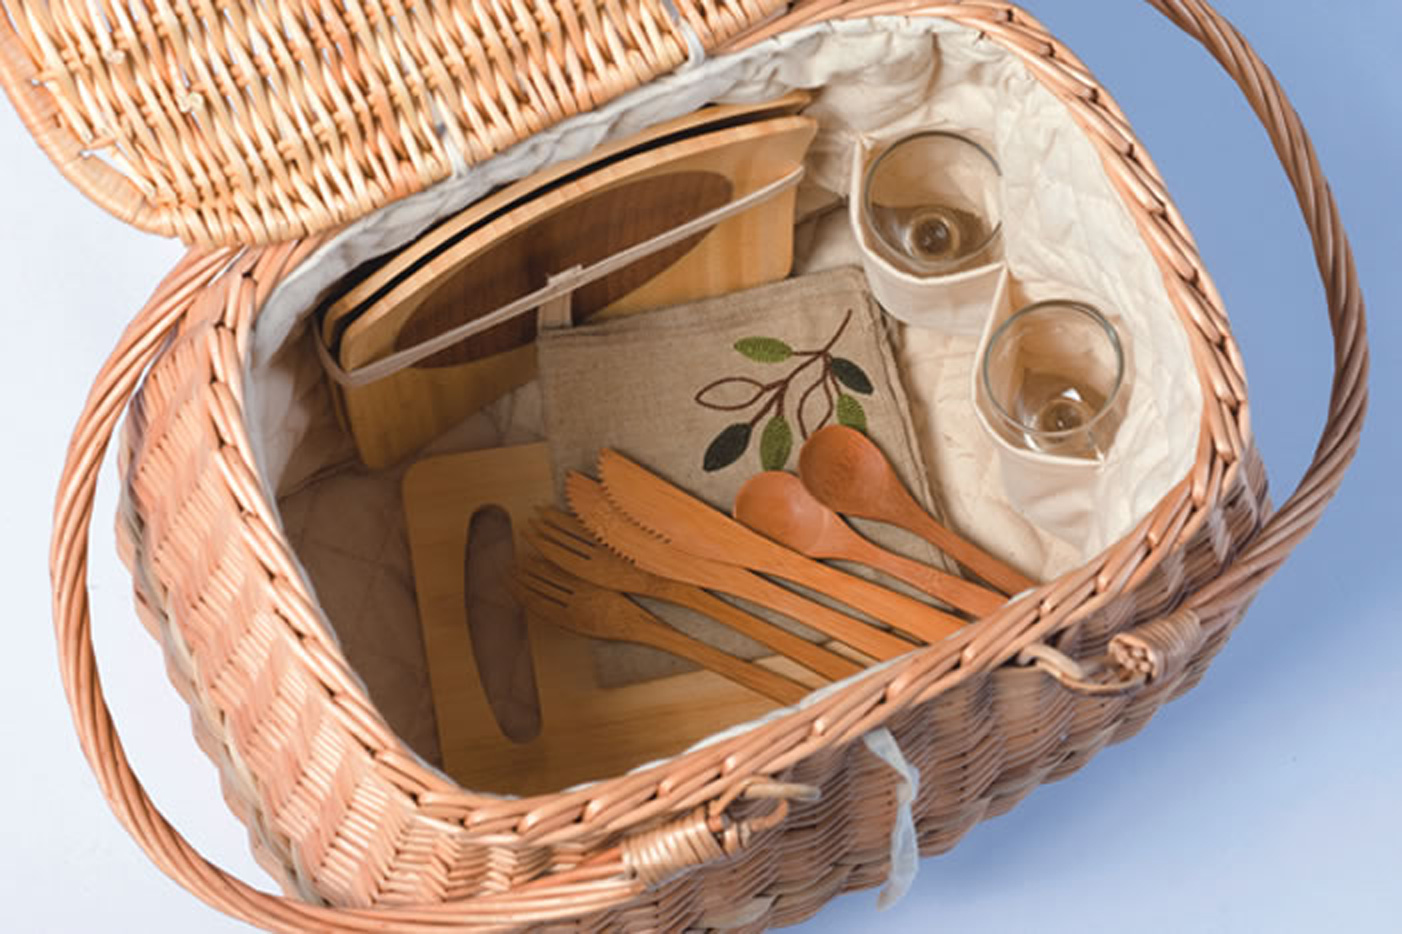 Picnic Plus Eco Friendly 2 Person Picnic Basket with